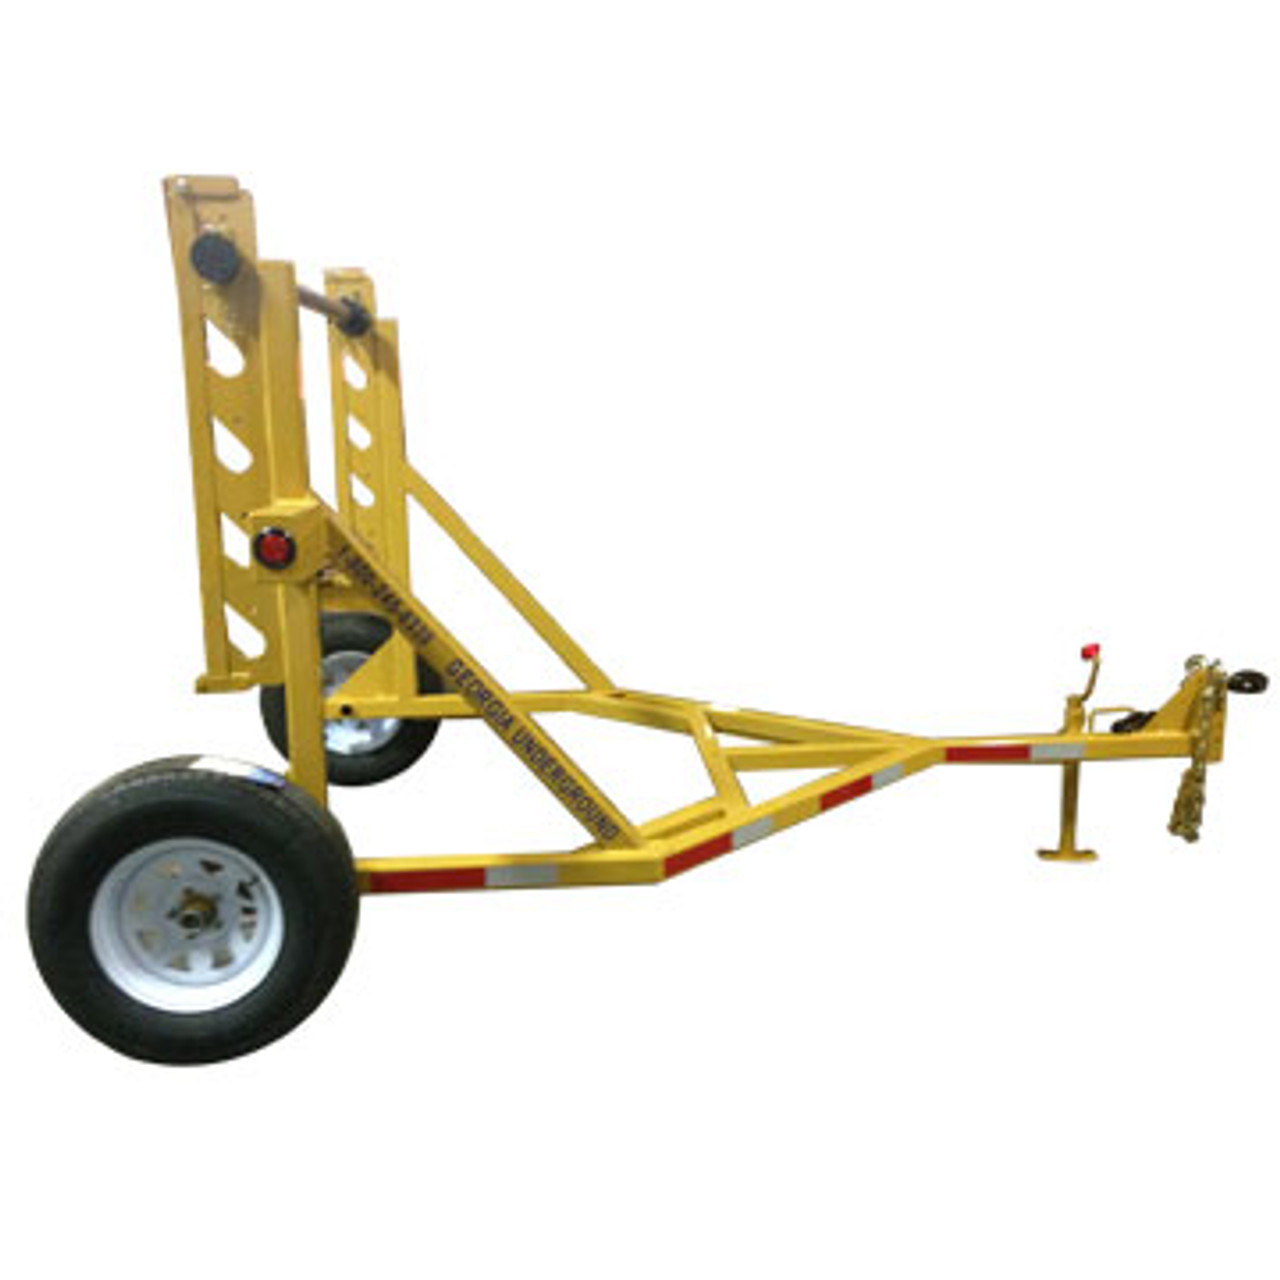 "The TR 3500 Manual Reel Trailer can handle a variety of products with a diameter from 24"" to 120"". Contact our veteran, knowledgeable staff for more information on this trailer."